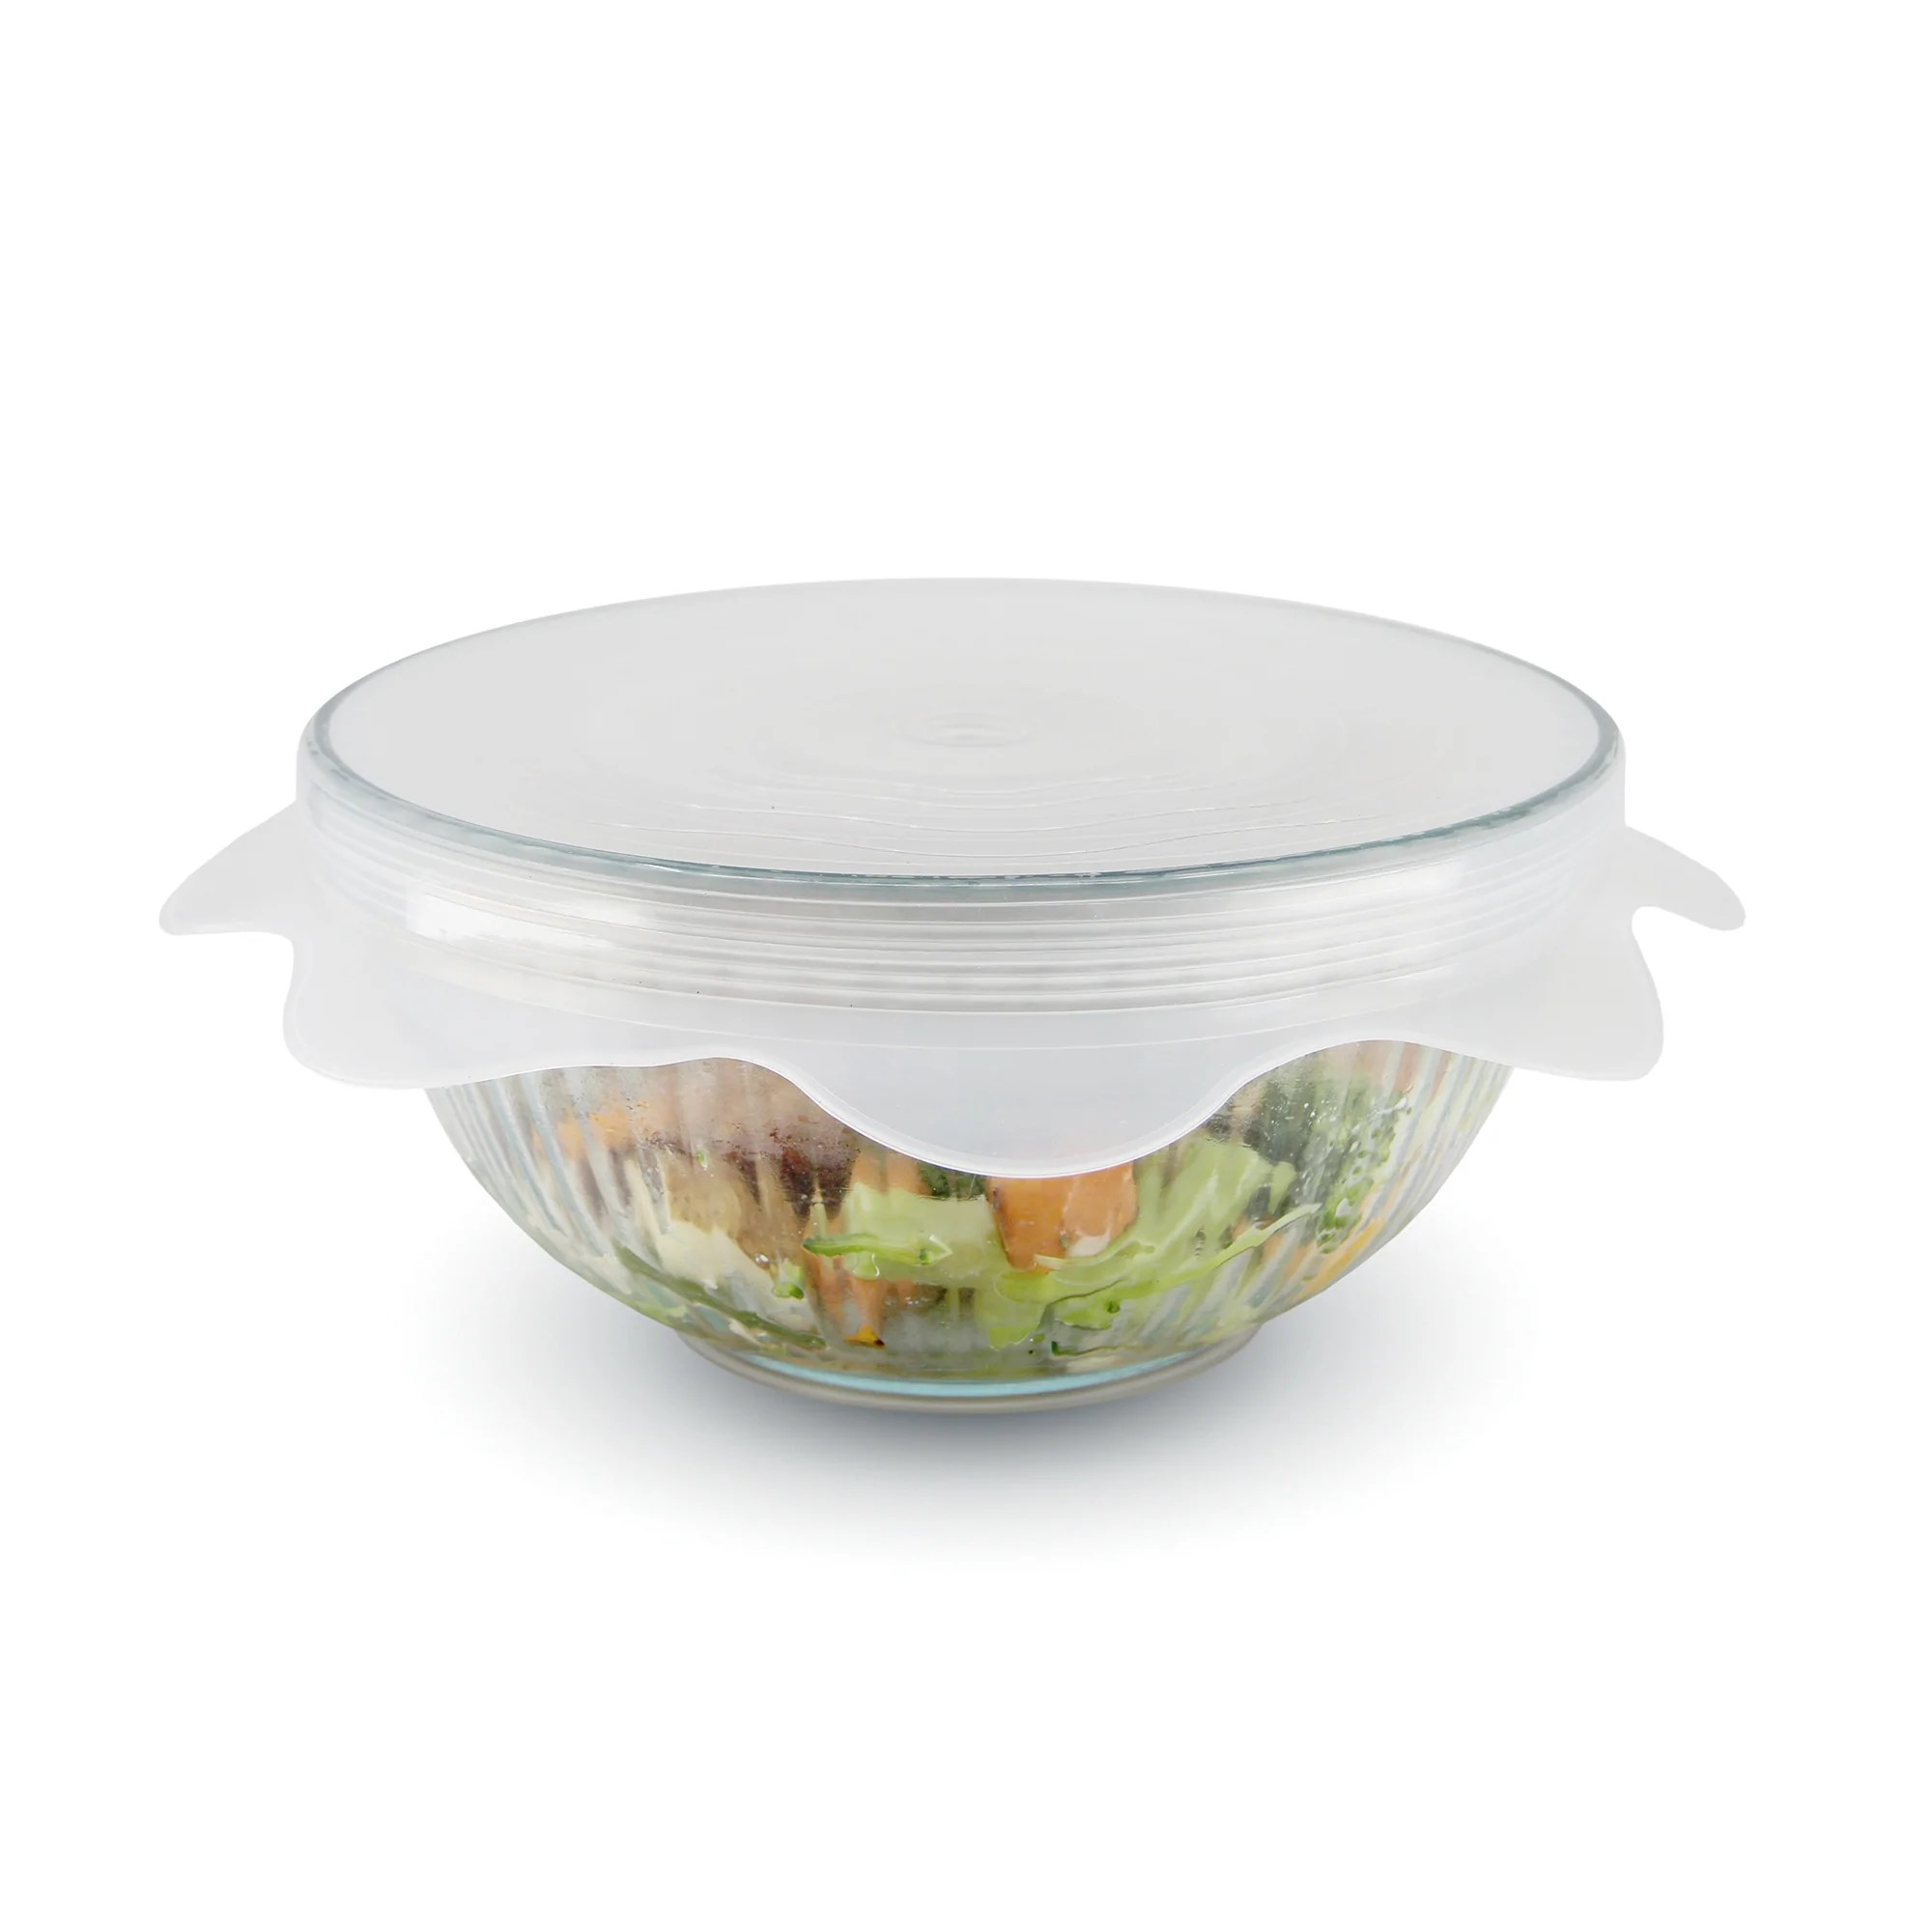 microwave food covers silicone vented reusable covers from grand fusion